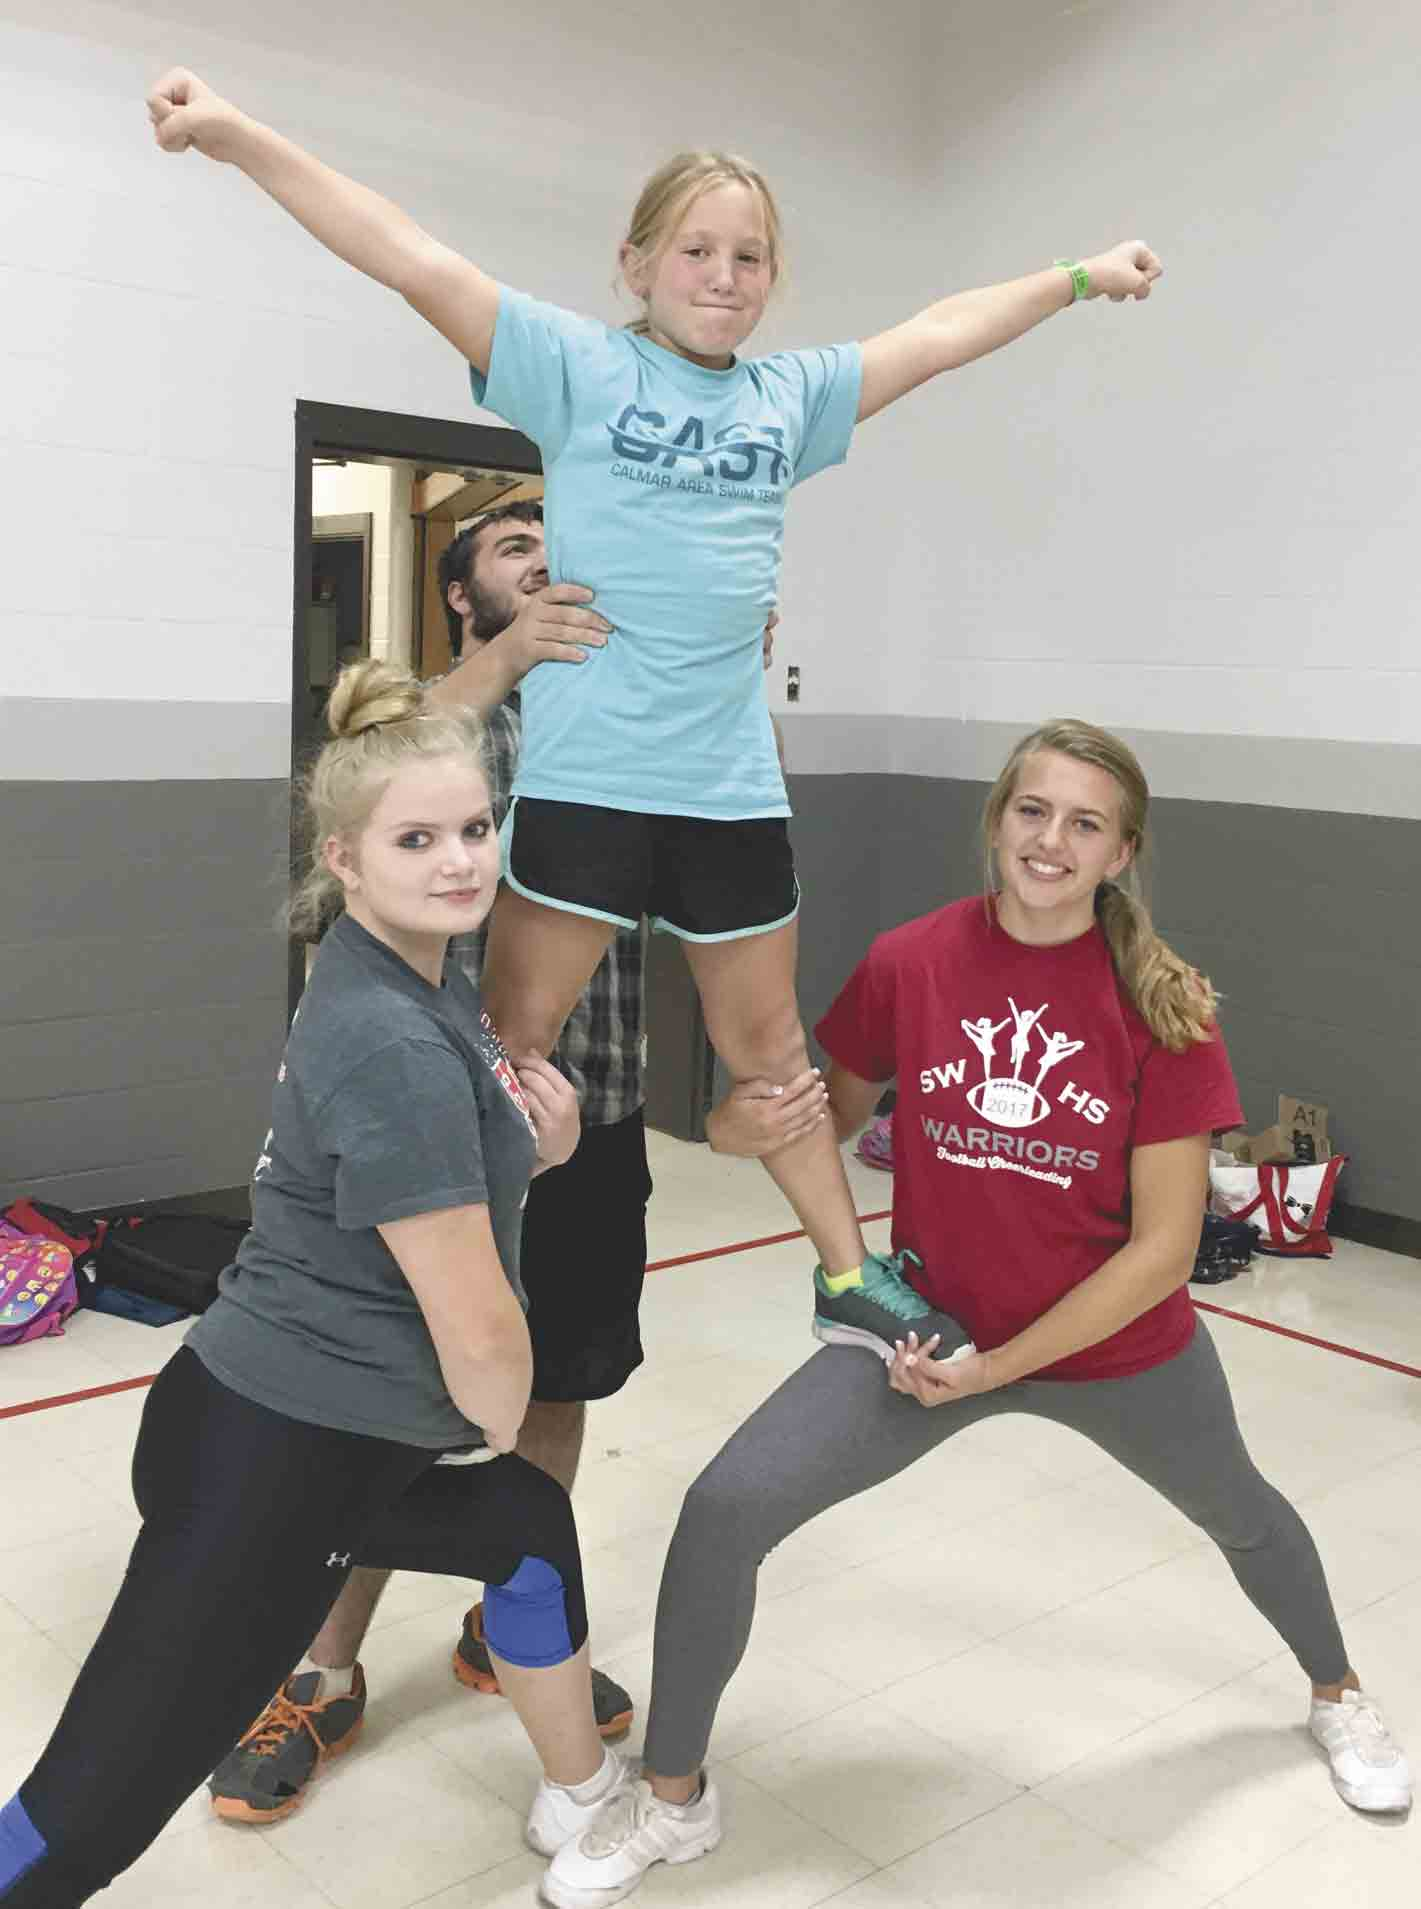 South Winn senior Hanna Schmitt (right) and fellow cheerleaders Anna-Brit Lien and Wyatt Trezona (back) help teach Junior Warriors CHEER participant Autumn Schmitt (top) a stunt. The youth cheerleading program was created by Hanna and helps teach much more than cheerleading. (submitted...